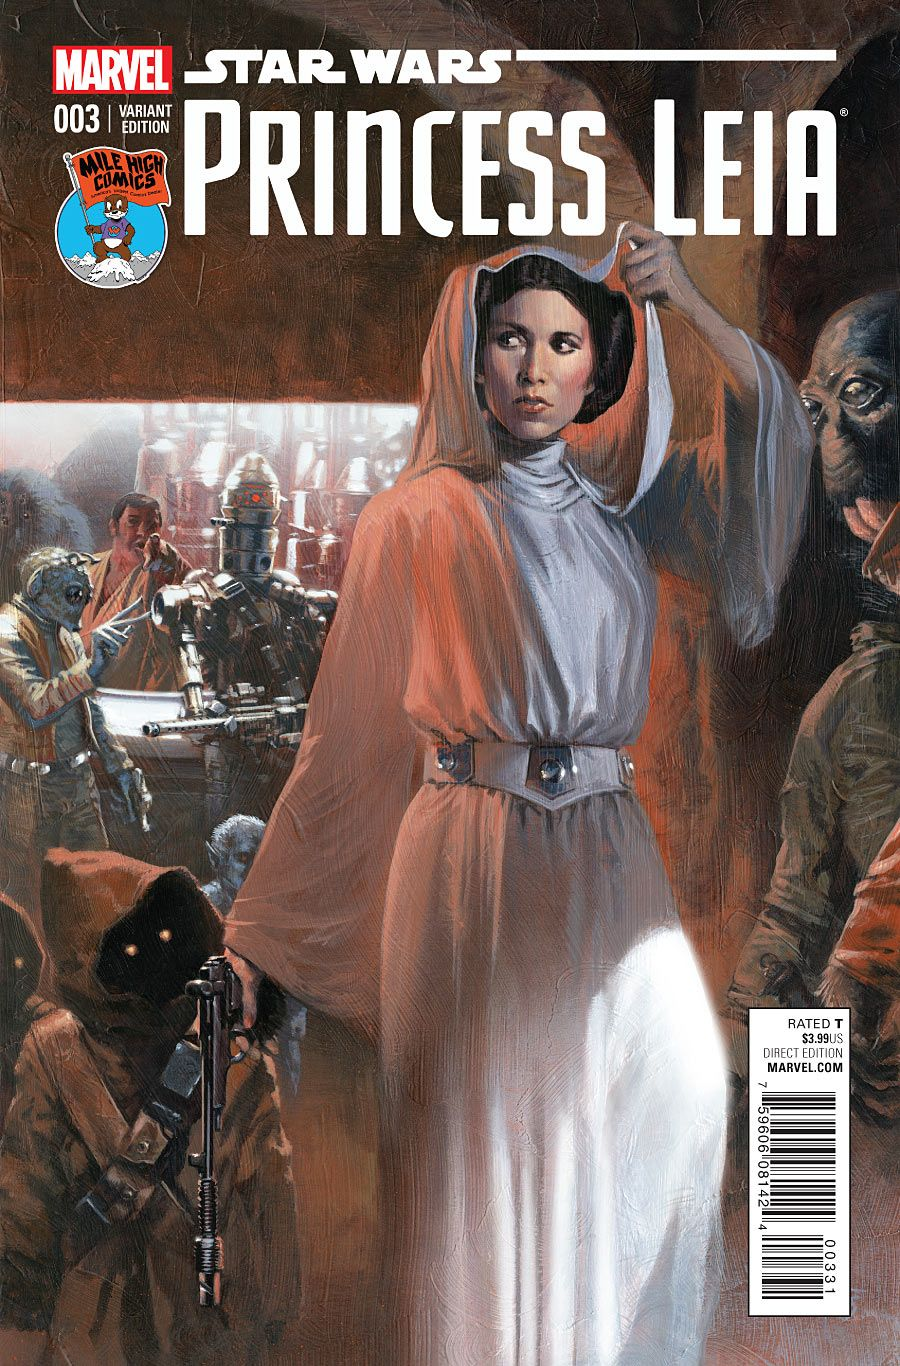 Princess Leia #3 - Variant cover by Mile High